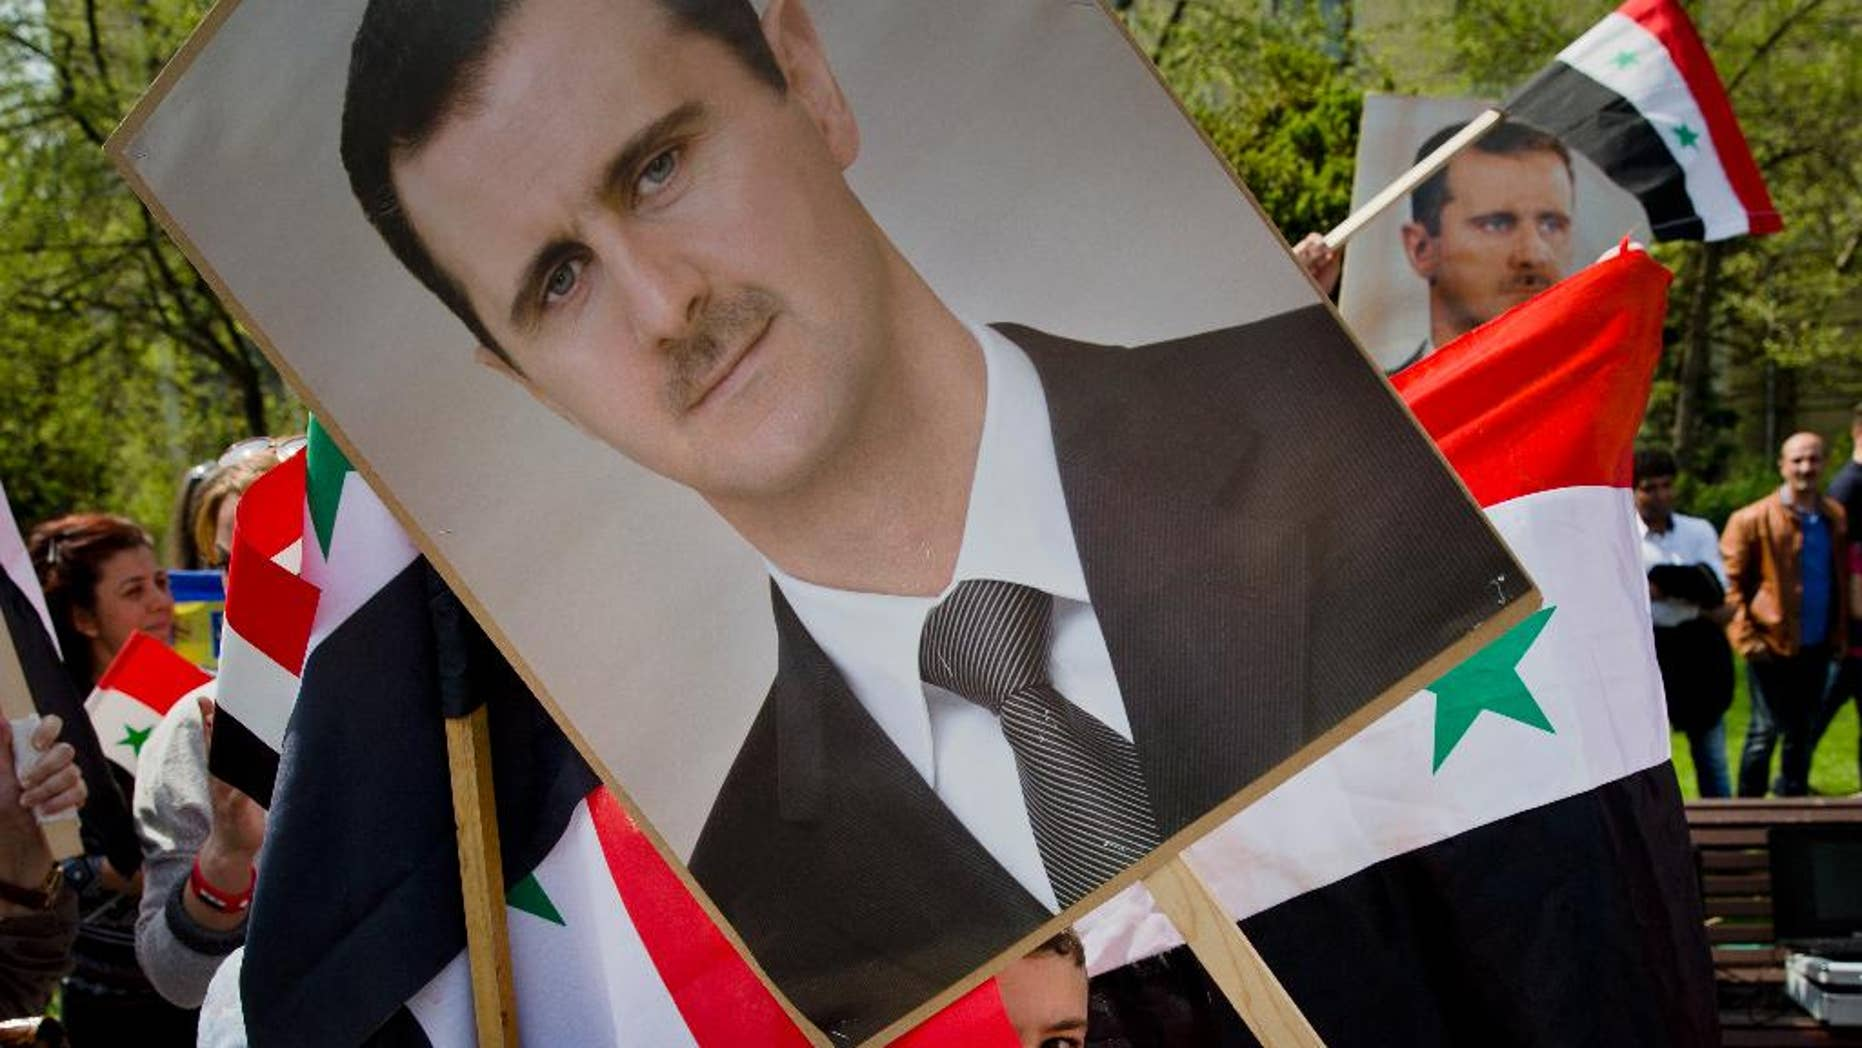 A child of the Syrian community in Romania peers from behind a picture of Syrian President Bashar Assad, during a rally in Bucharest, Romania, Sunday, April 9, 2016. Syrians gathered in a protest against foreign support for the rebel groups in Syria and voiced their support for the country's president Bashar Assad and his regime. (AP Photo/Vadim Ghirda)